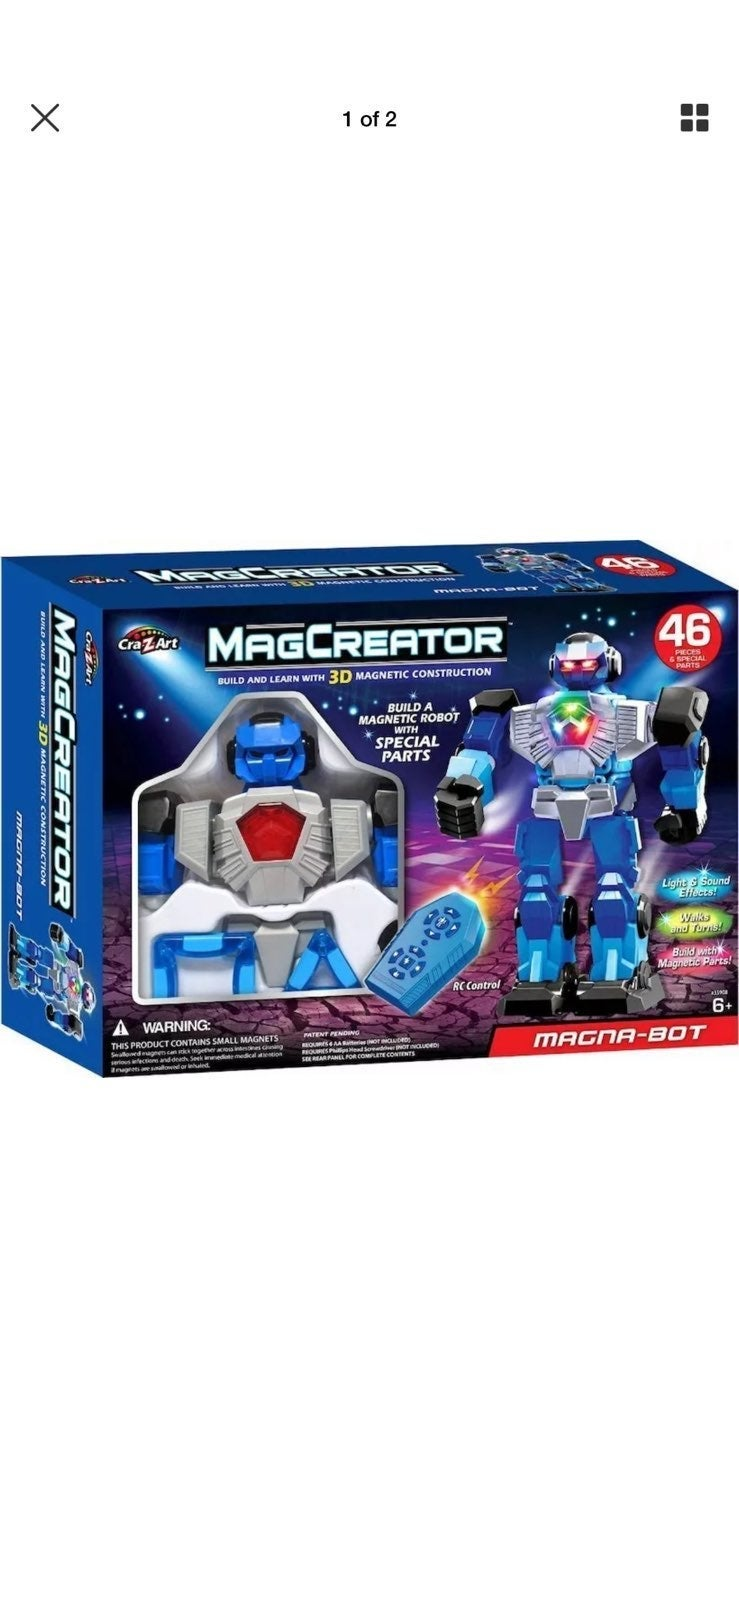 New Magna-Bot by Cra-Z-Art MagCreator fo